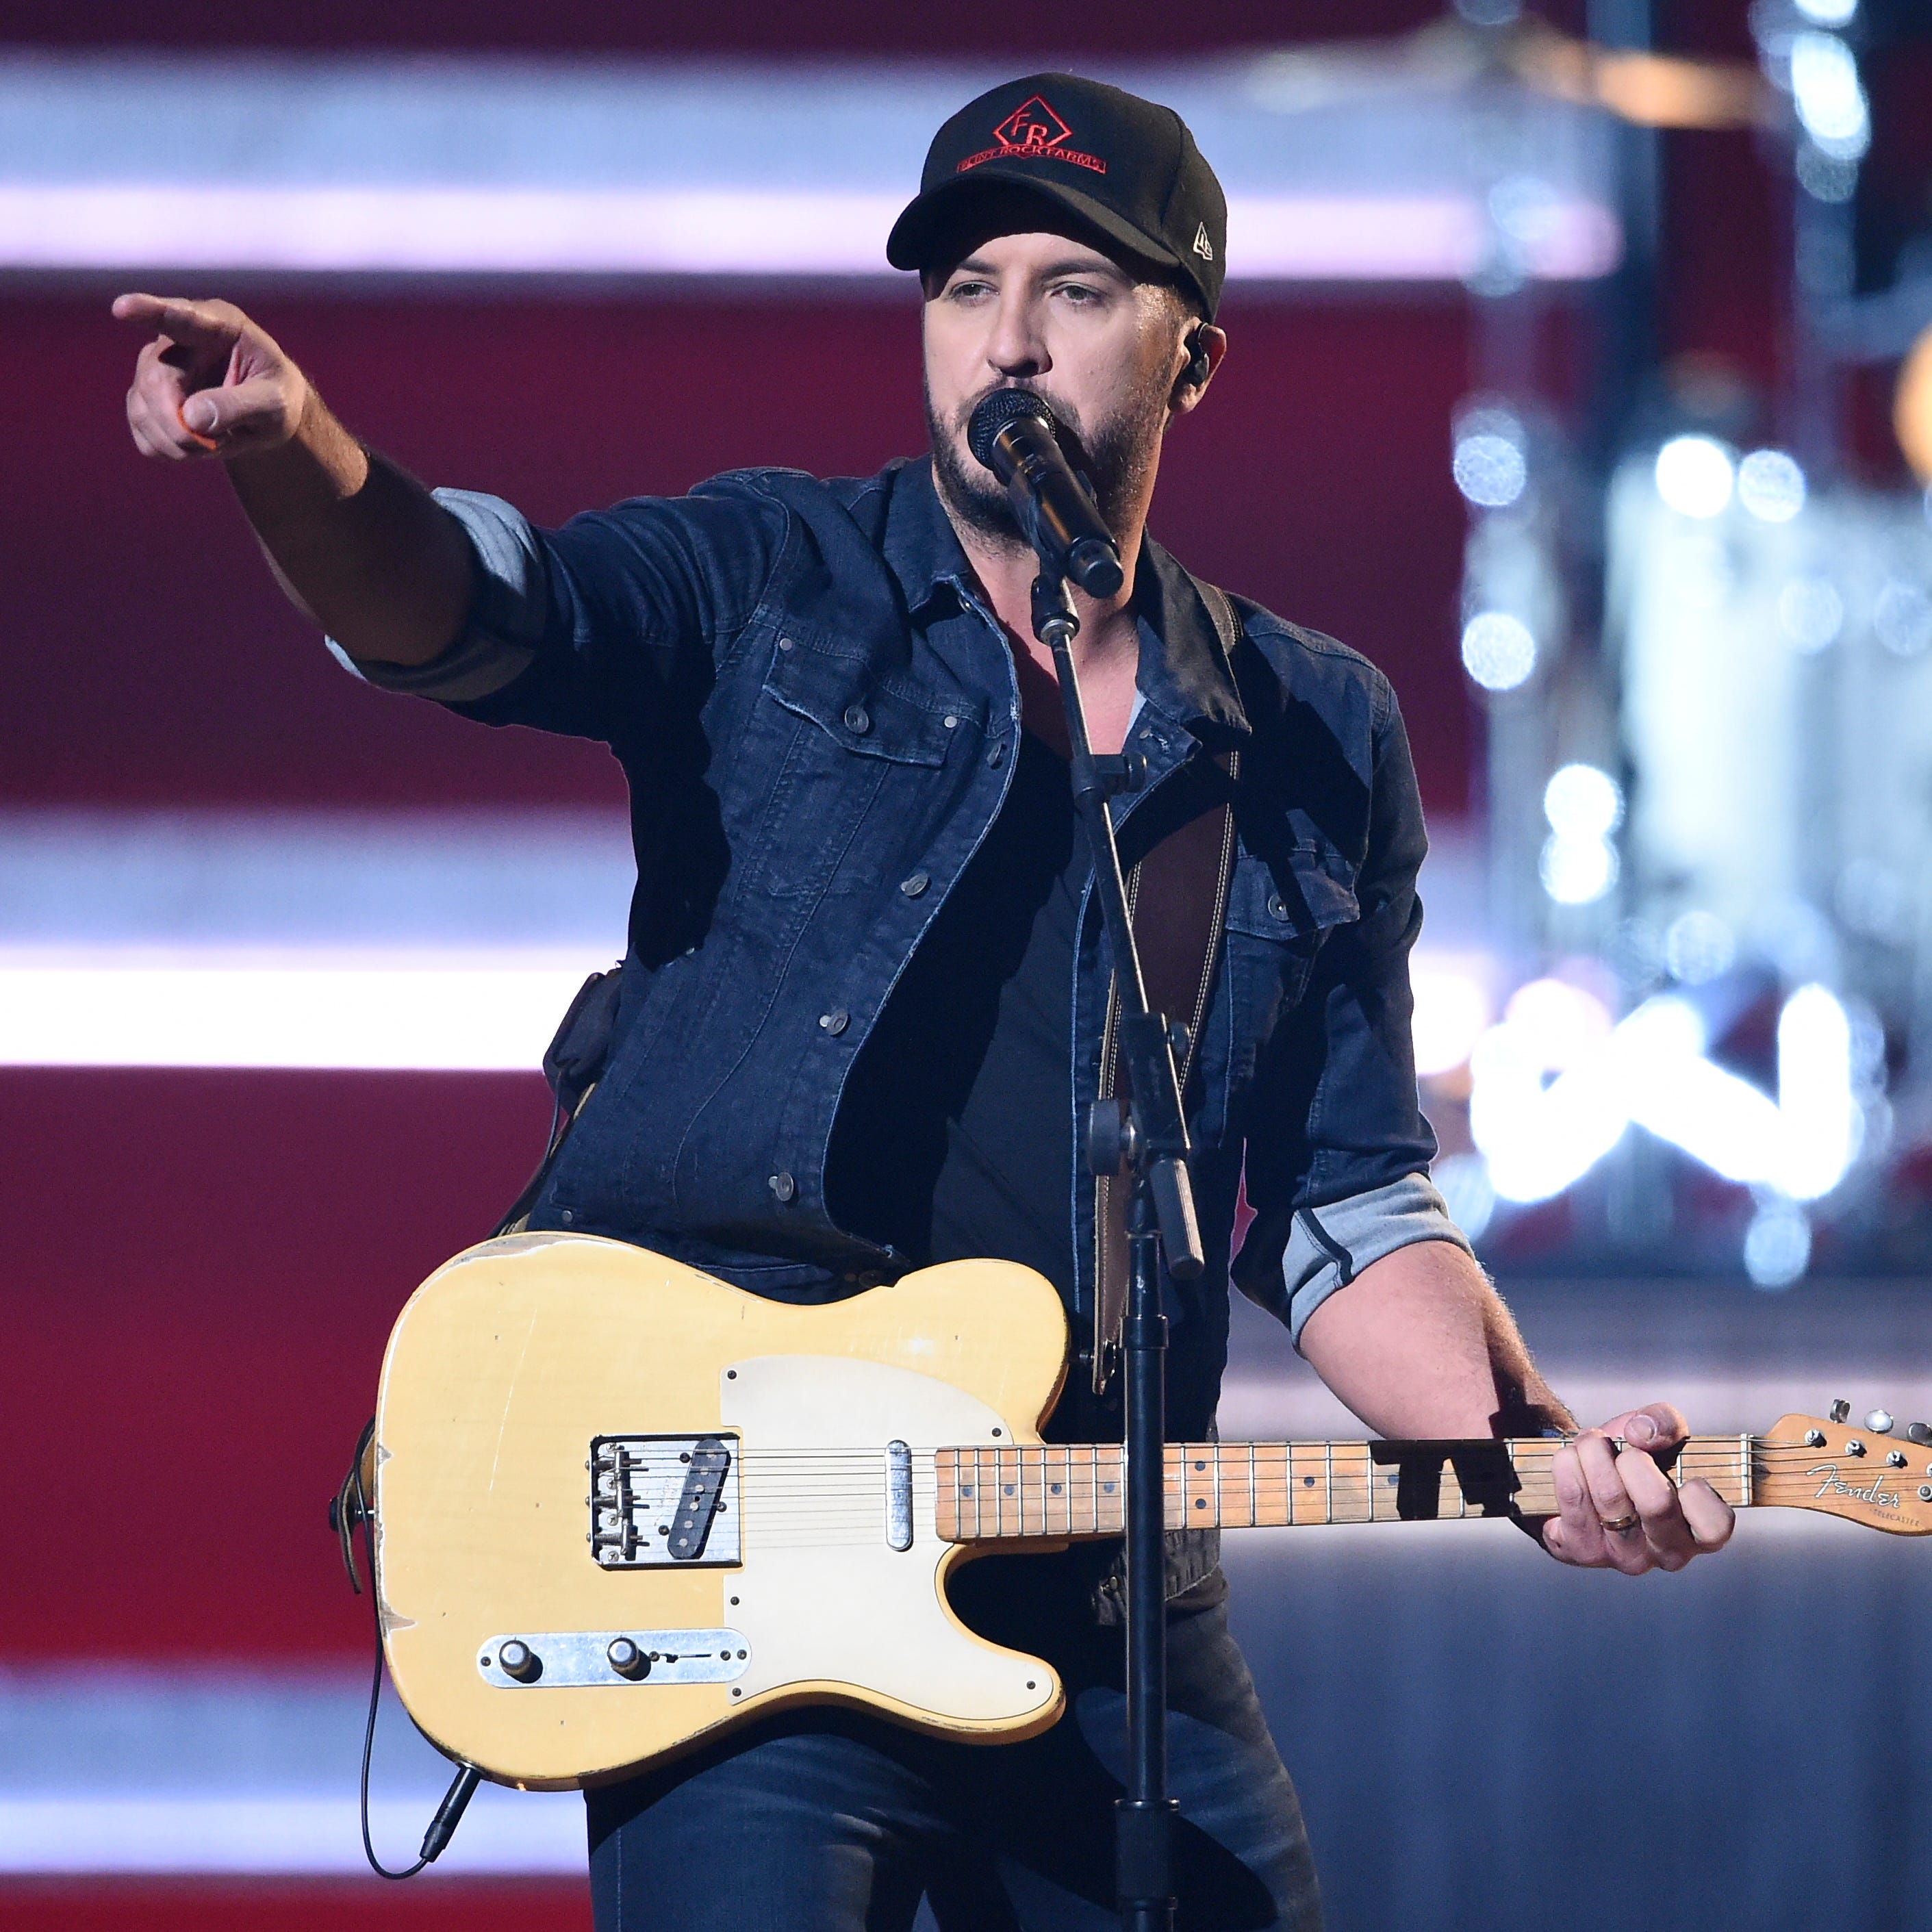 Luke Bryan reveals Sunset Repeat Tour with Cole Swindell and Jon Langston